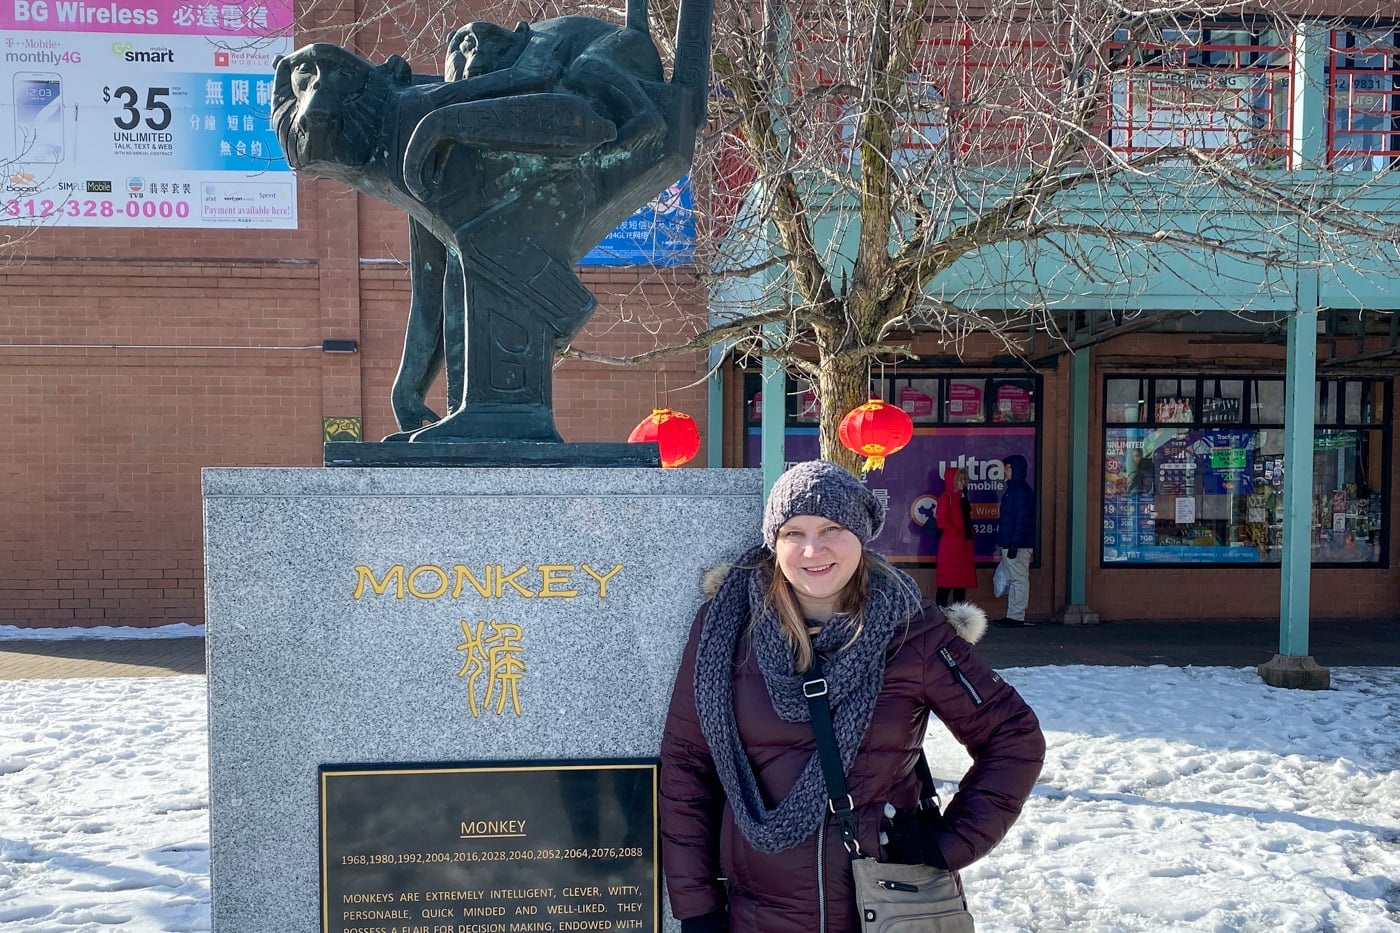 Posing with the Monkey for my birthday in Chinatown in Chicago.